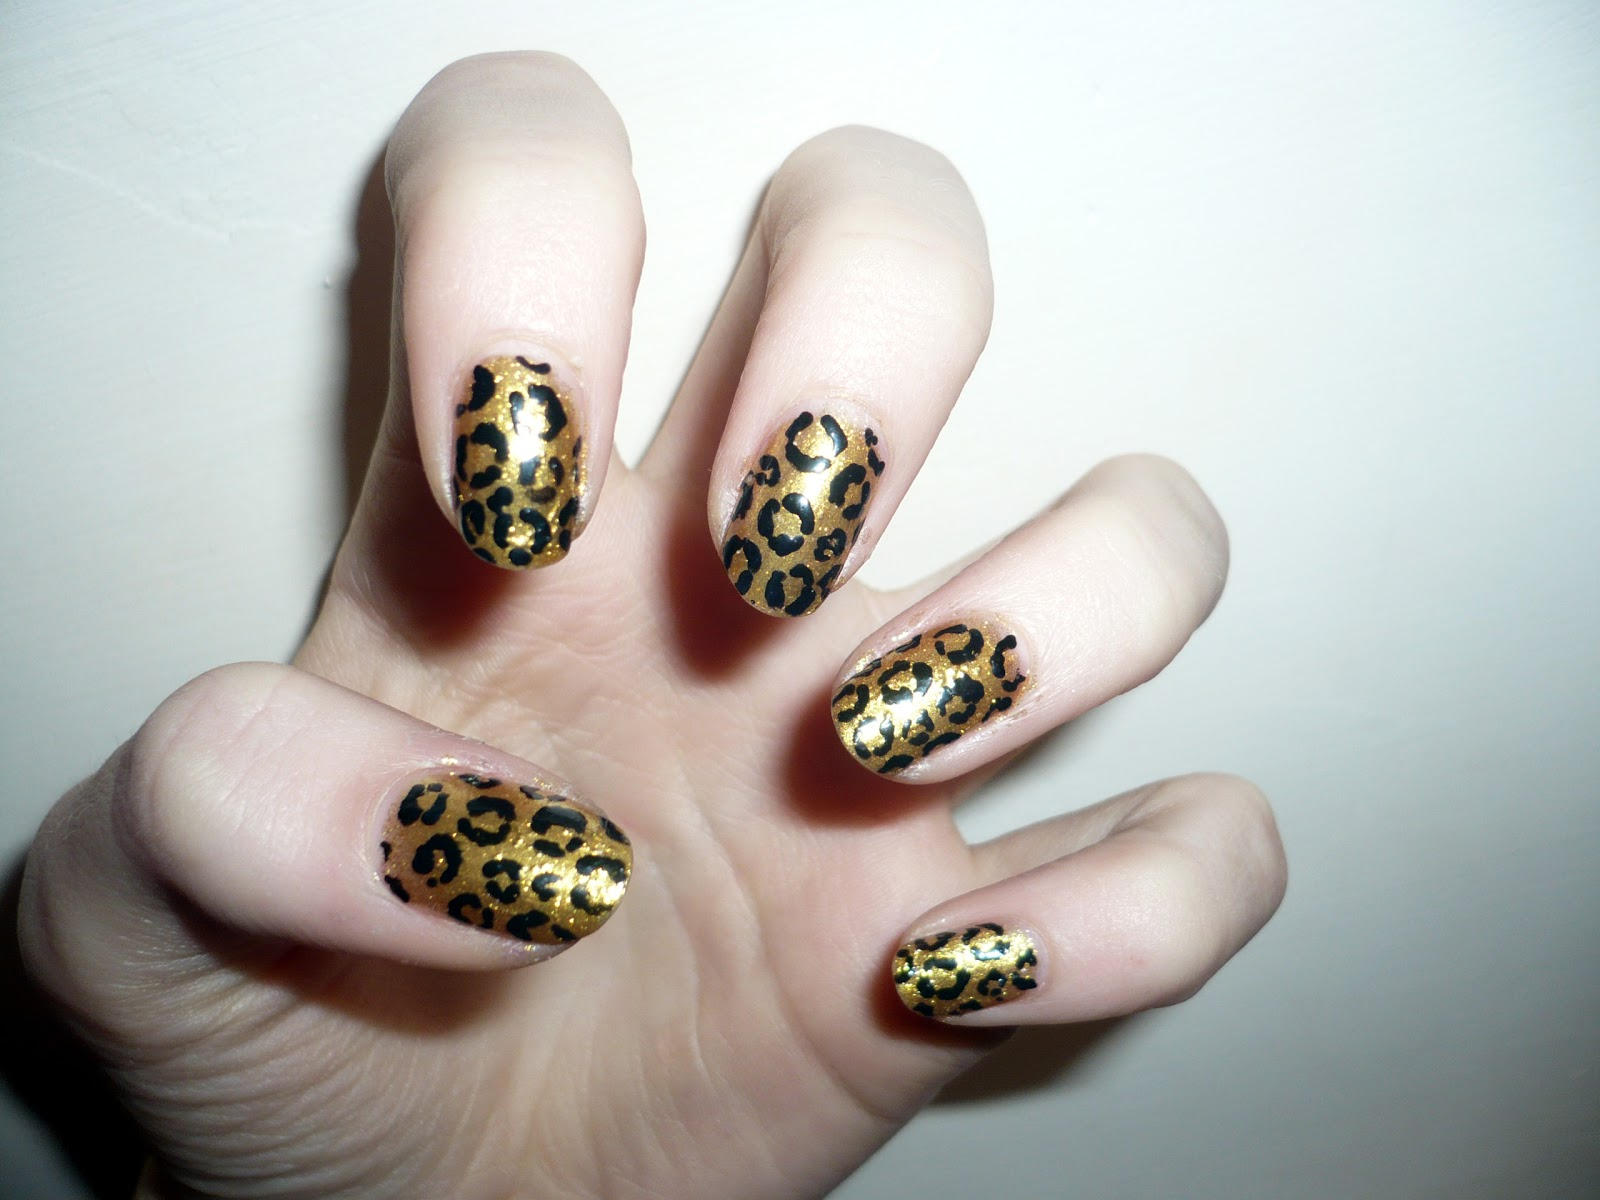 Fashion | a fashion, style and beauty blog: Gold leopard nail art